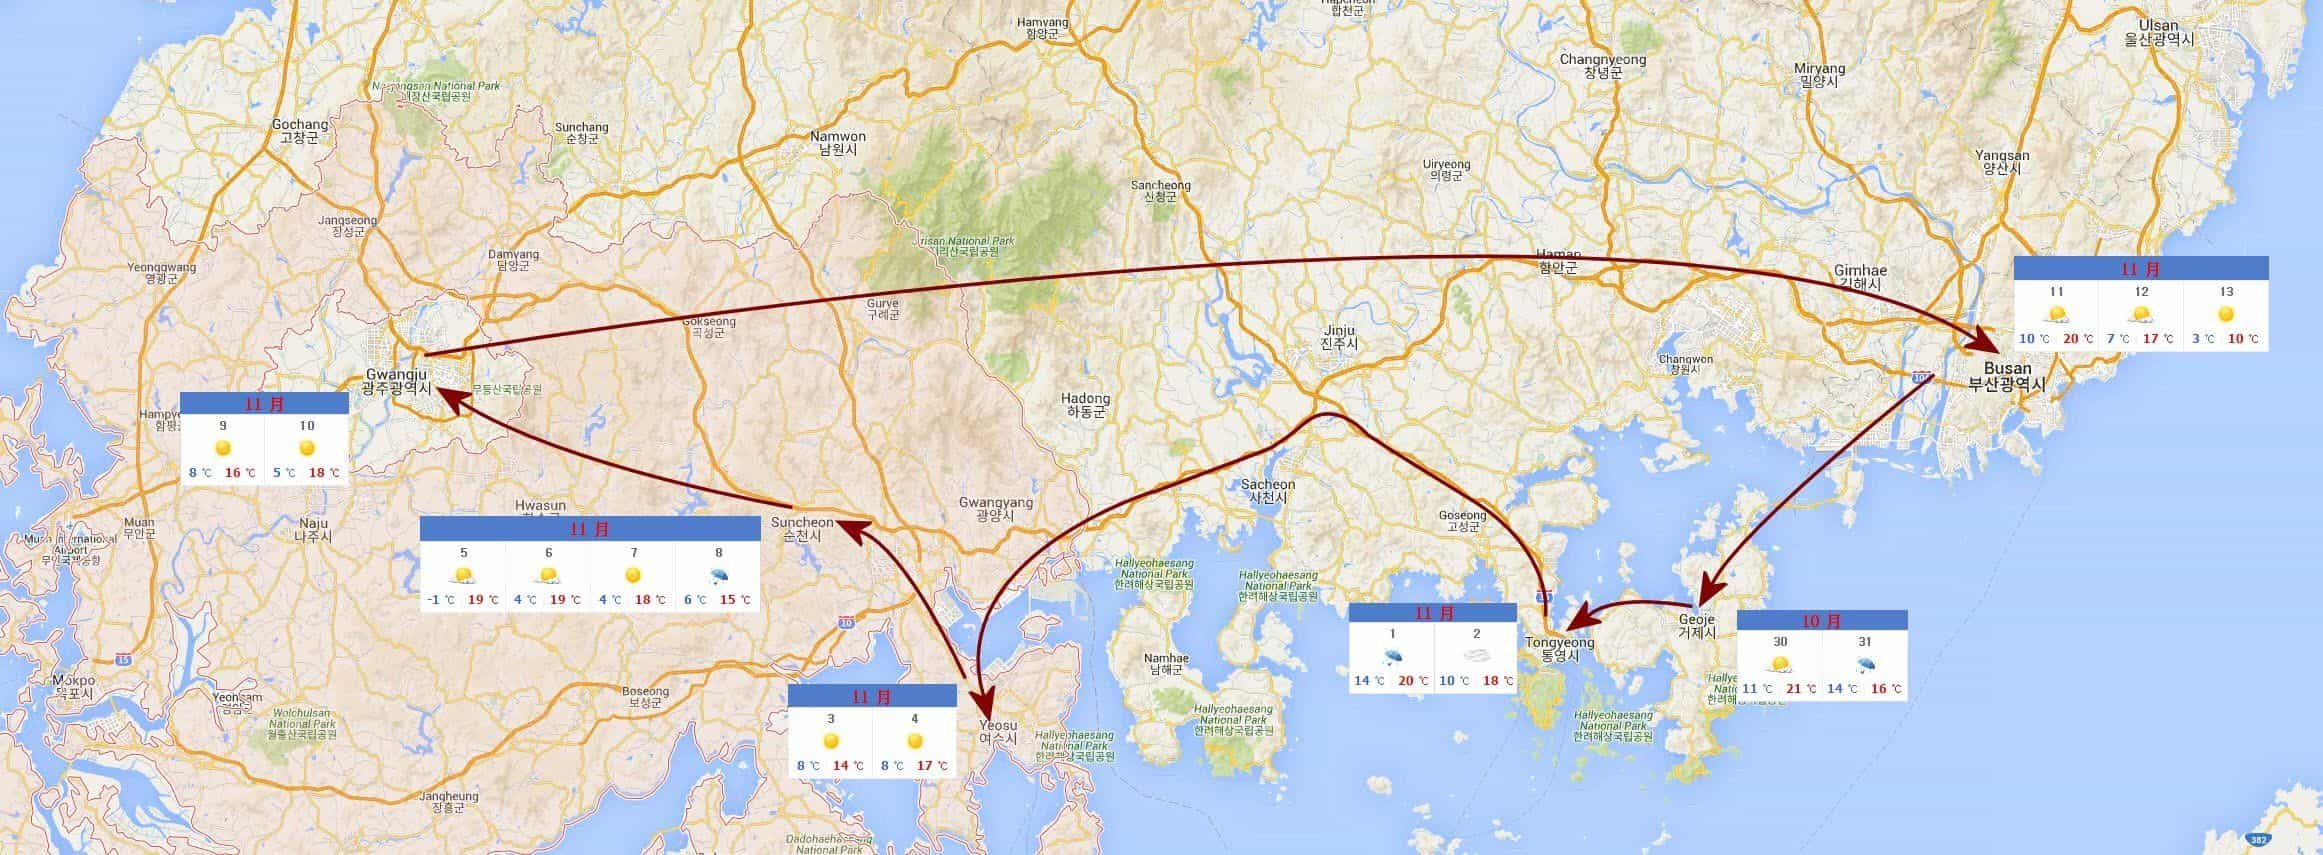 2015-southern-korea-authumn-tour-weather-forecast-80